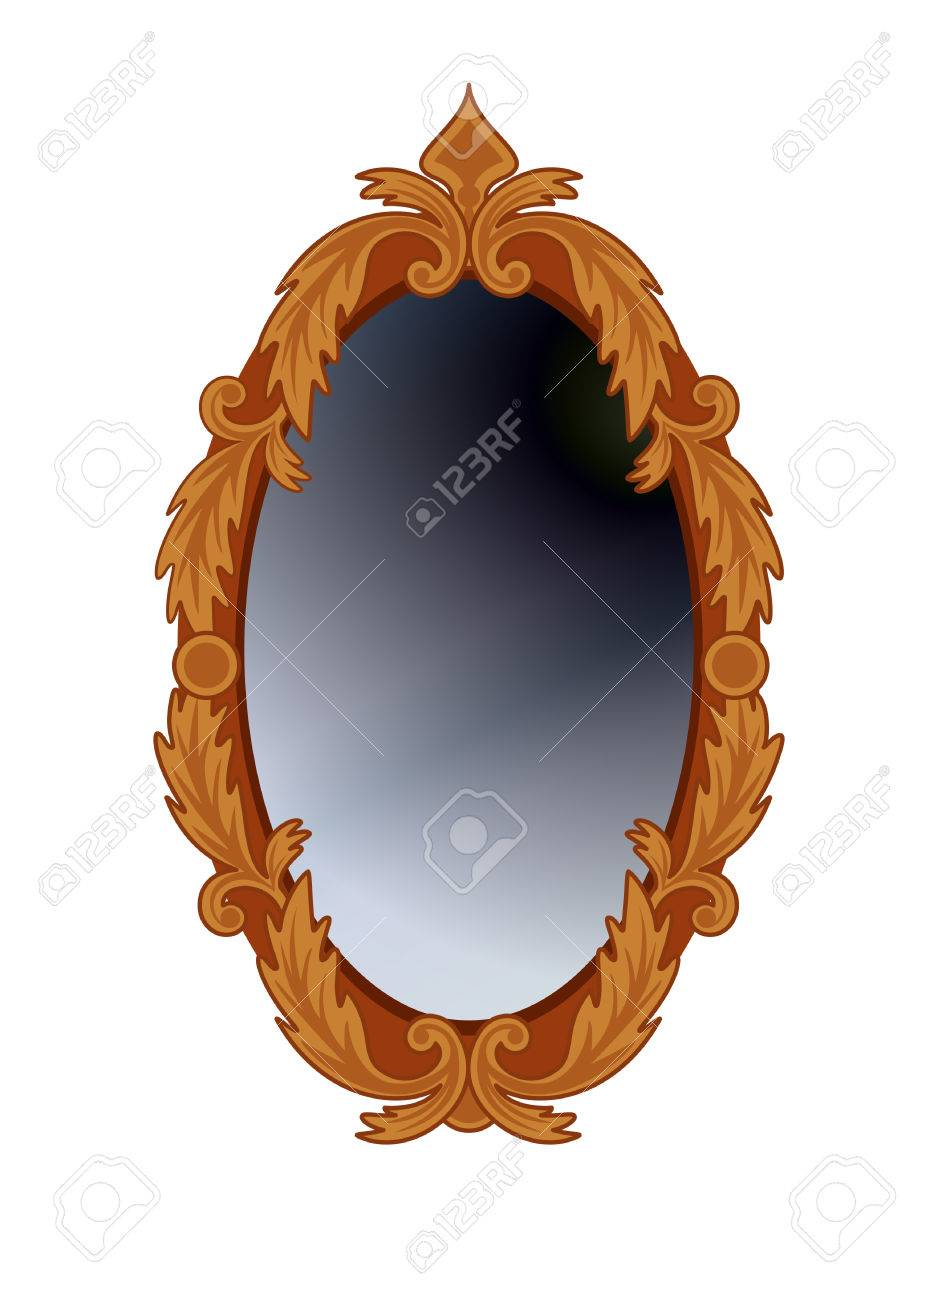 Antique Oval Mirror In Carved Wooden Frame Isolated On White